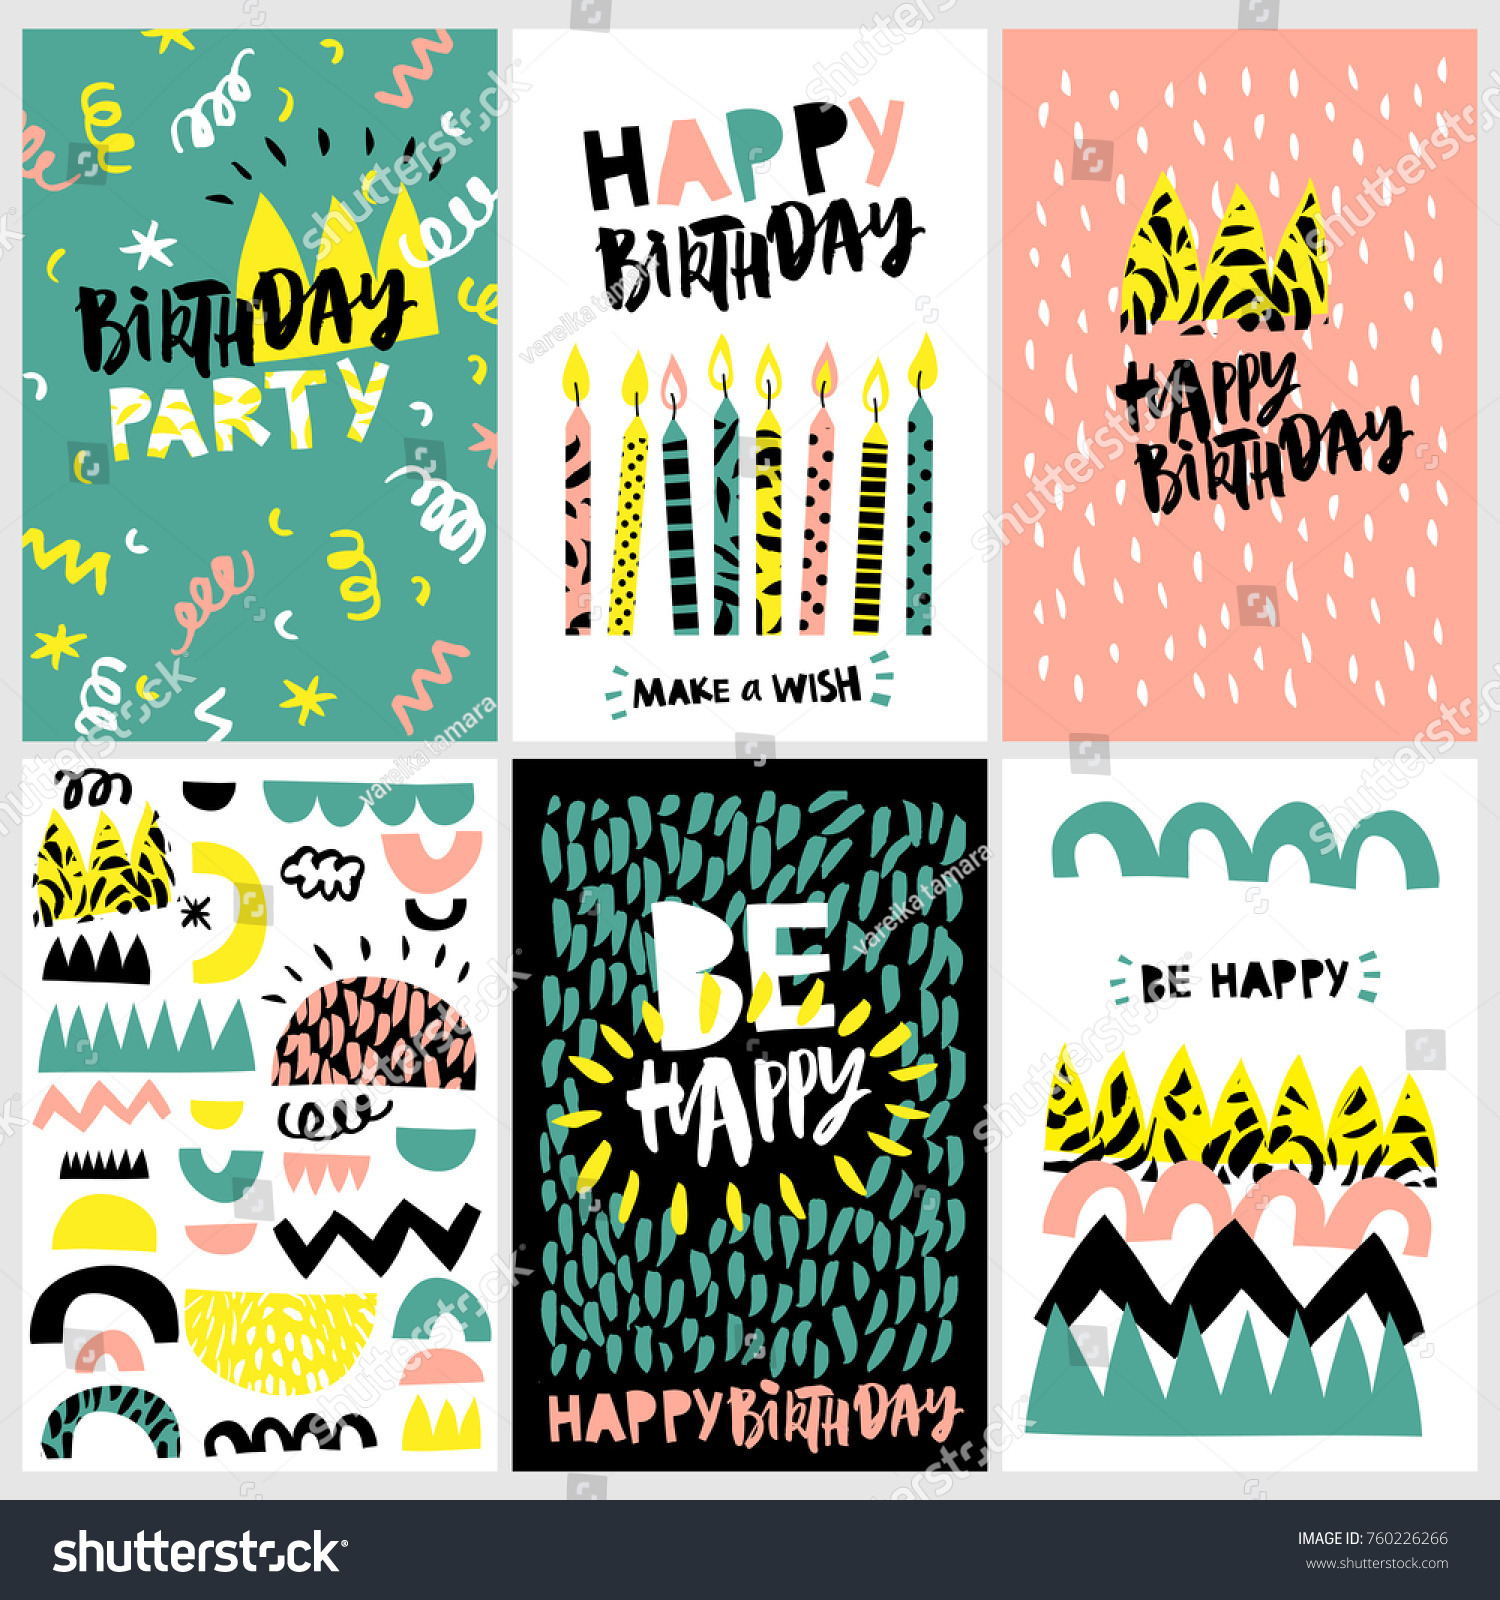 Be Happy Birthday Party Set Design Stock Vector